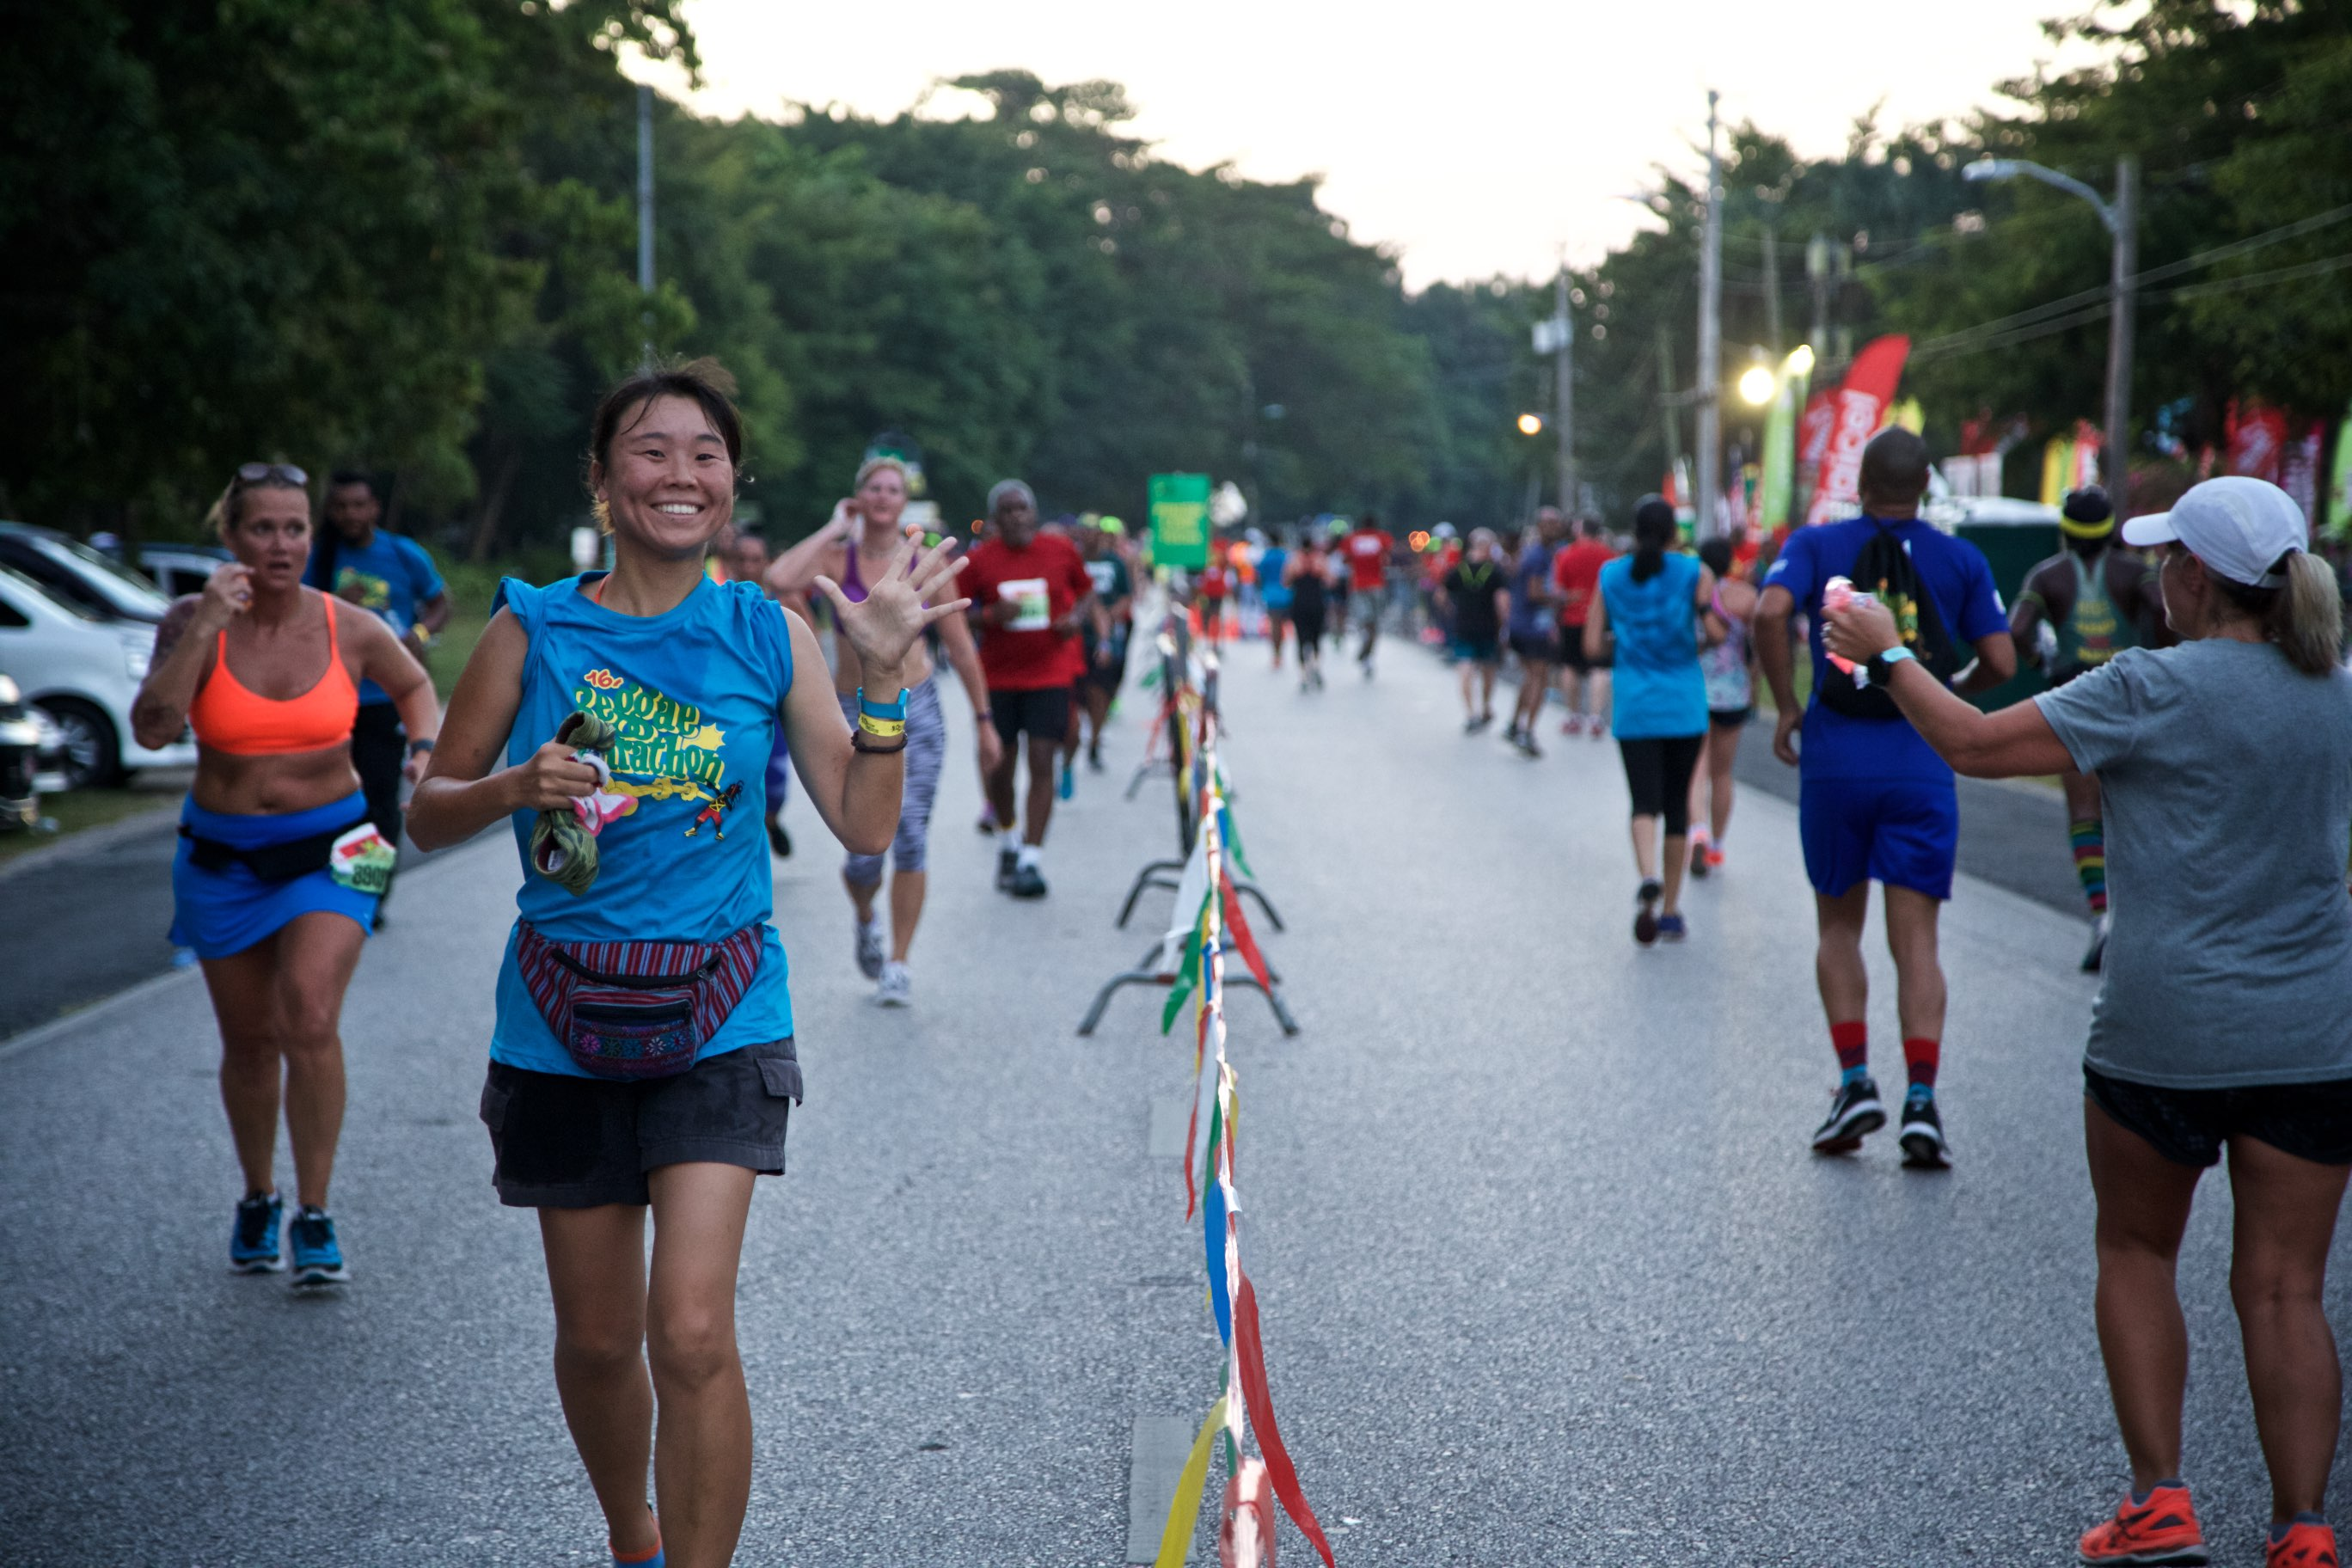 Participants on the run route of the 2016 Reggae Marathon in Negril, Jamaica.